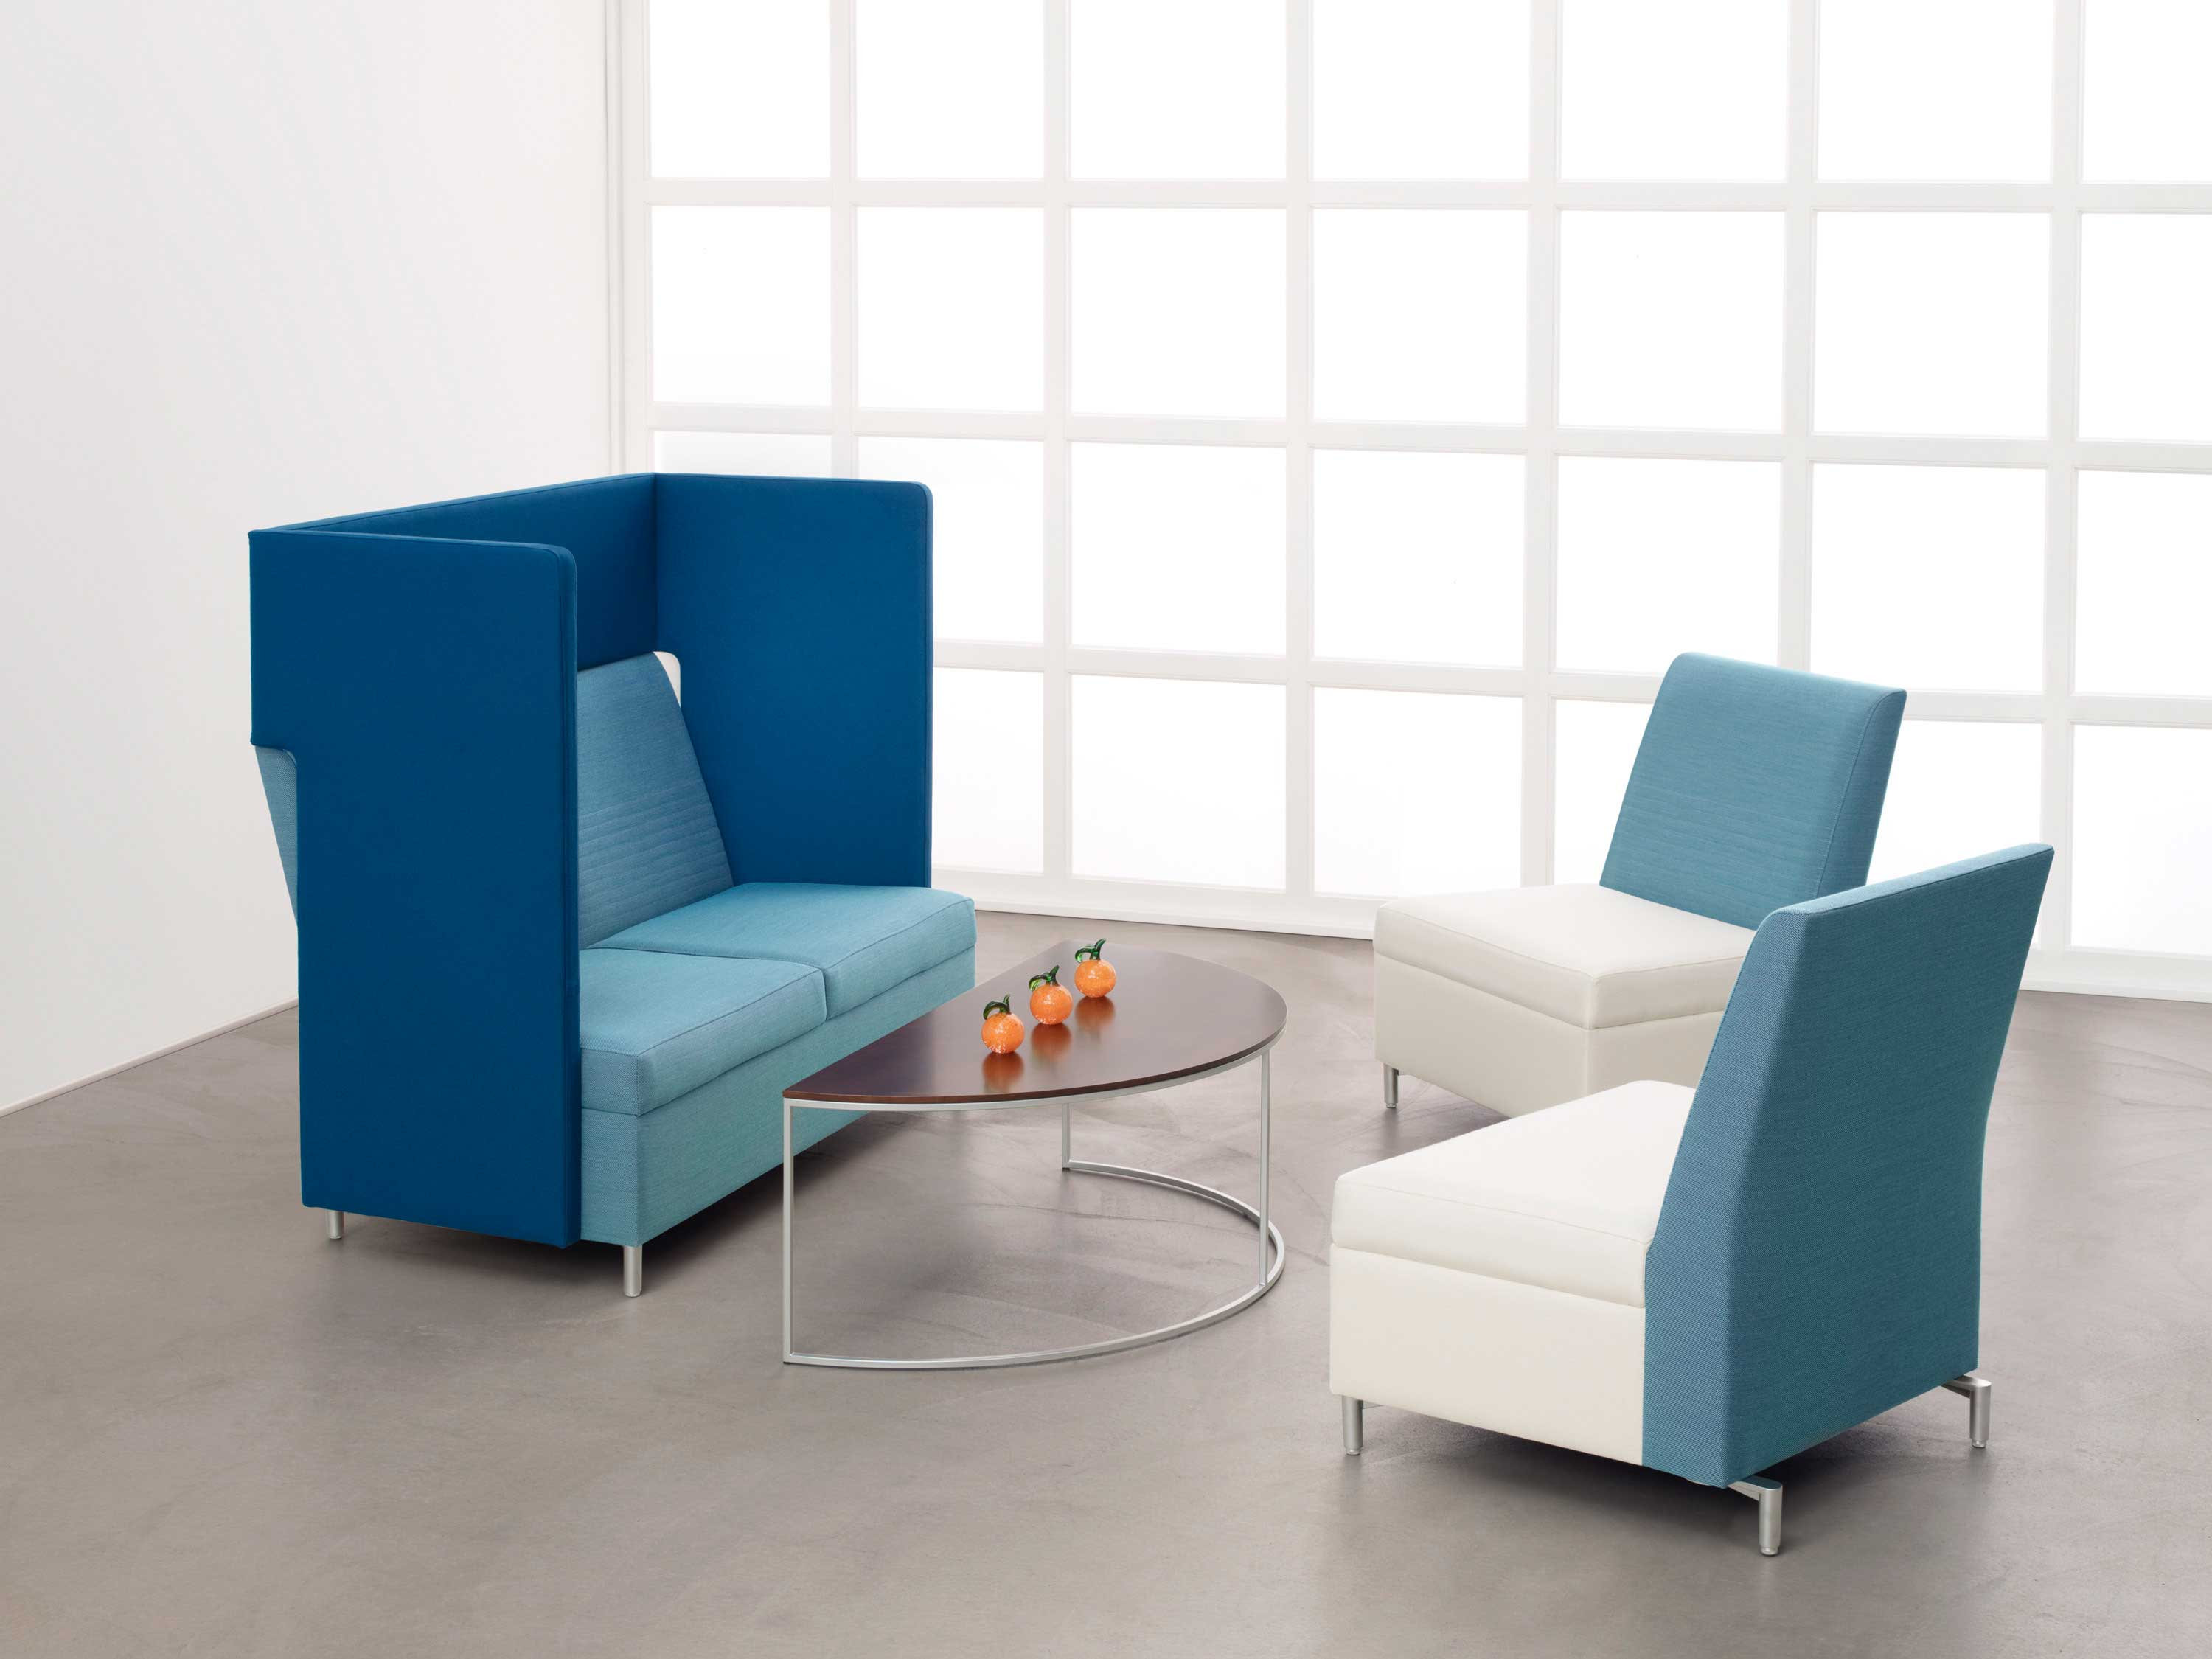 The New Collaborative Work Space Modern Office Furniture